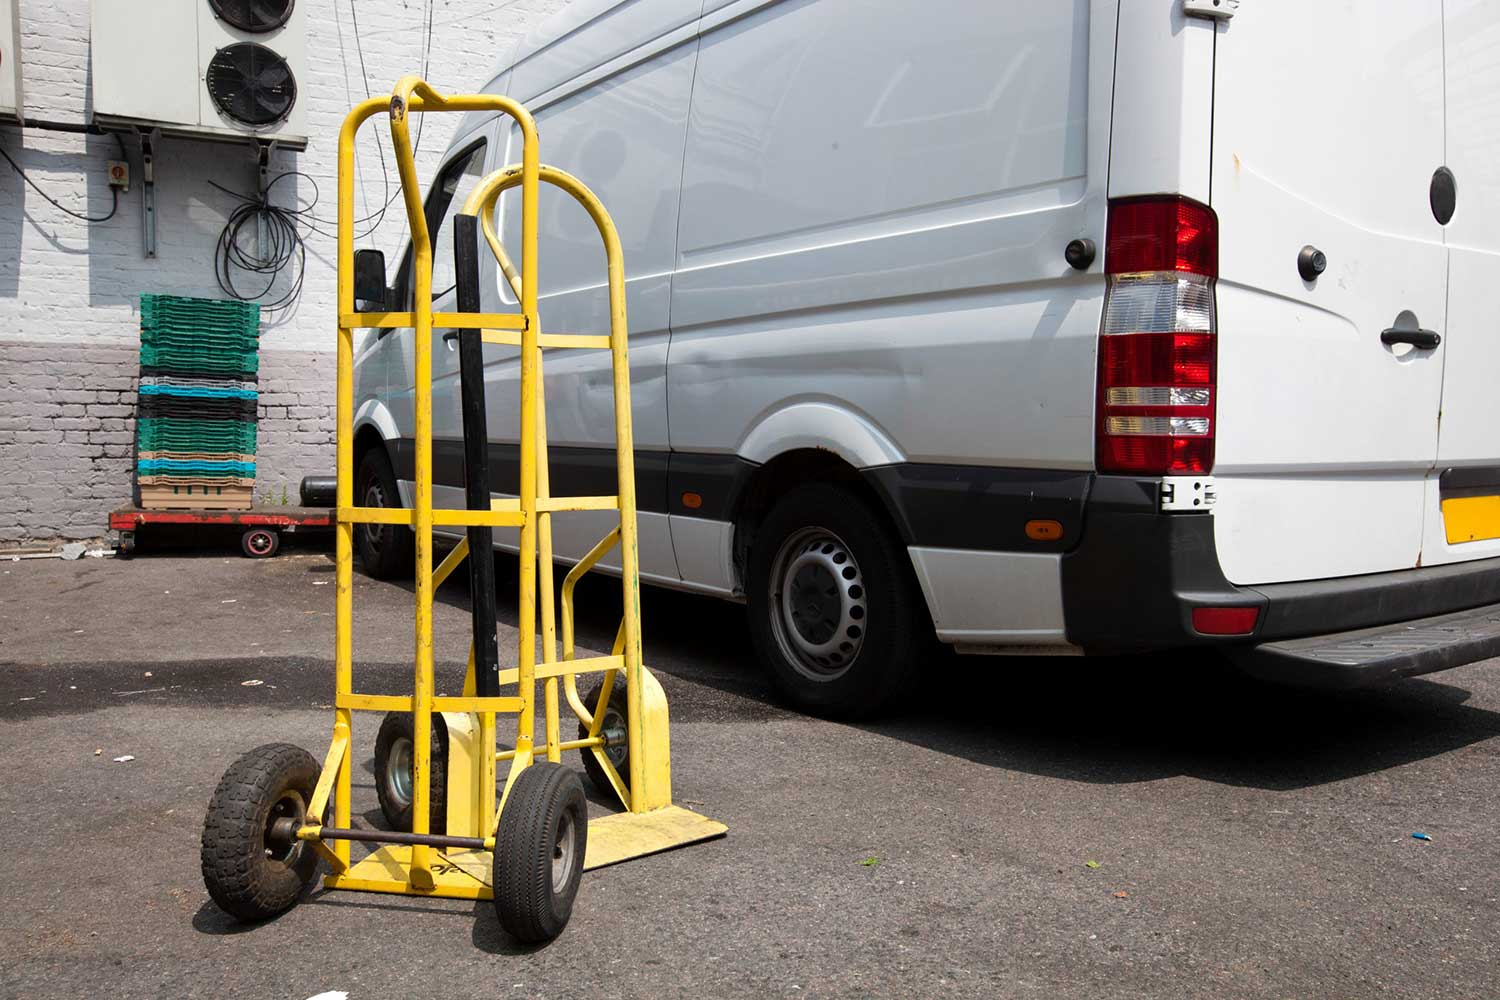 UK Express Delivery - van with trolley